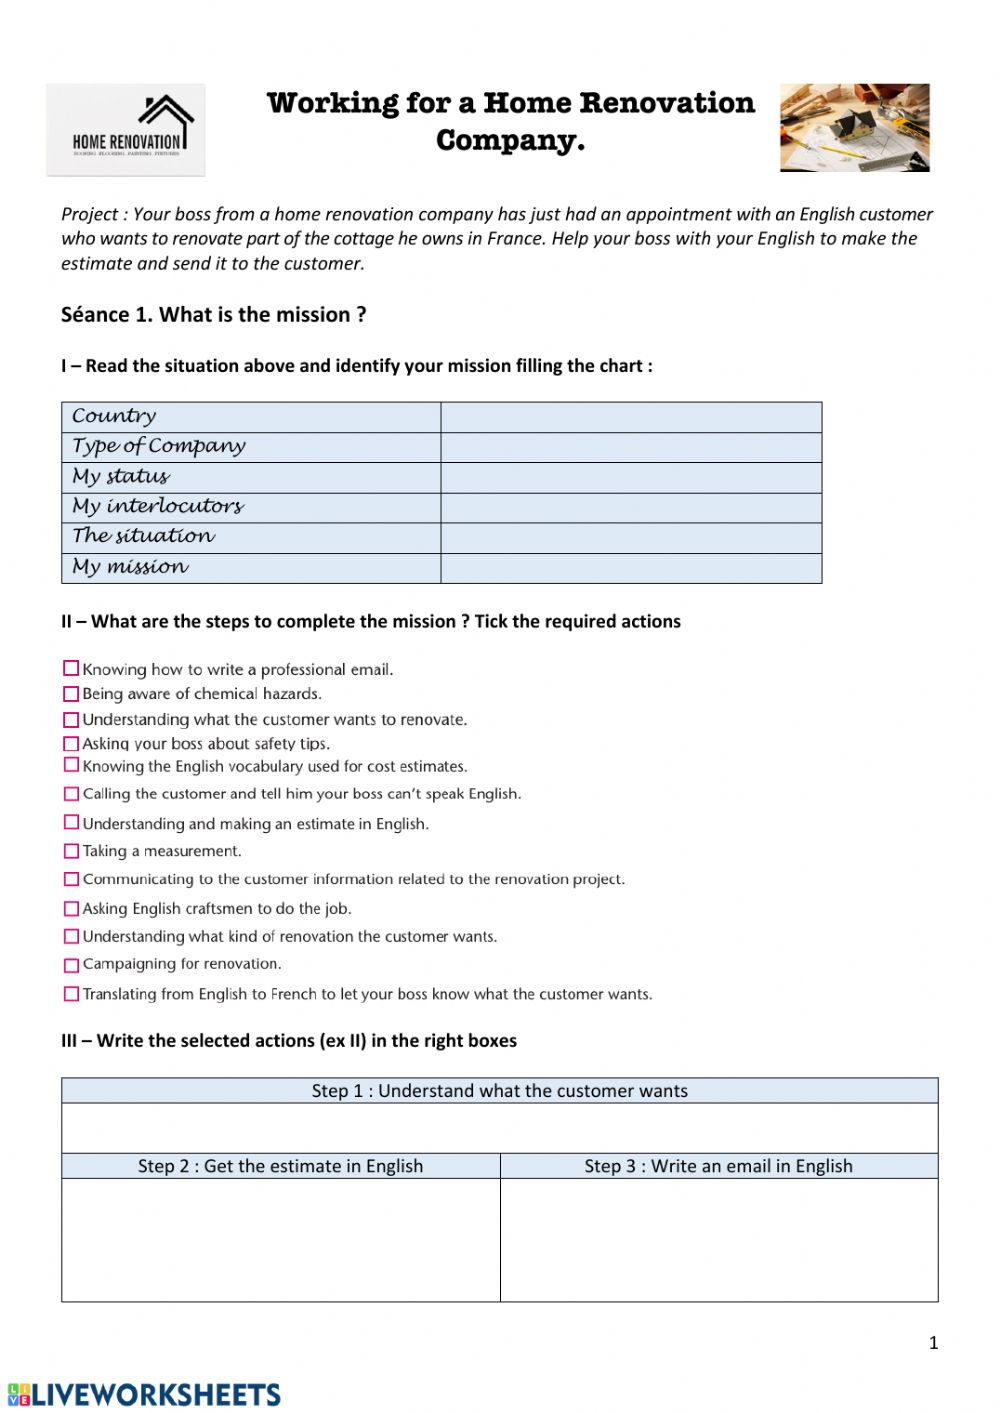 Working In A Home Renovation Company Worksheet